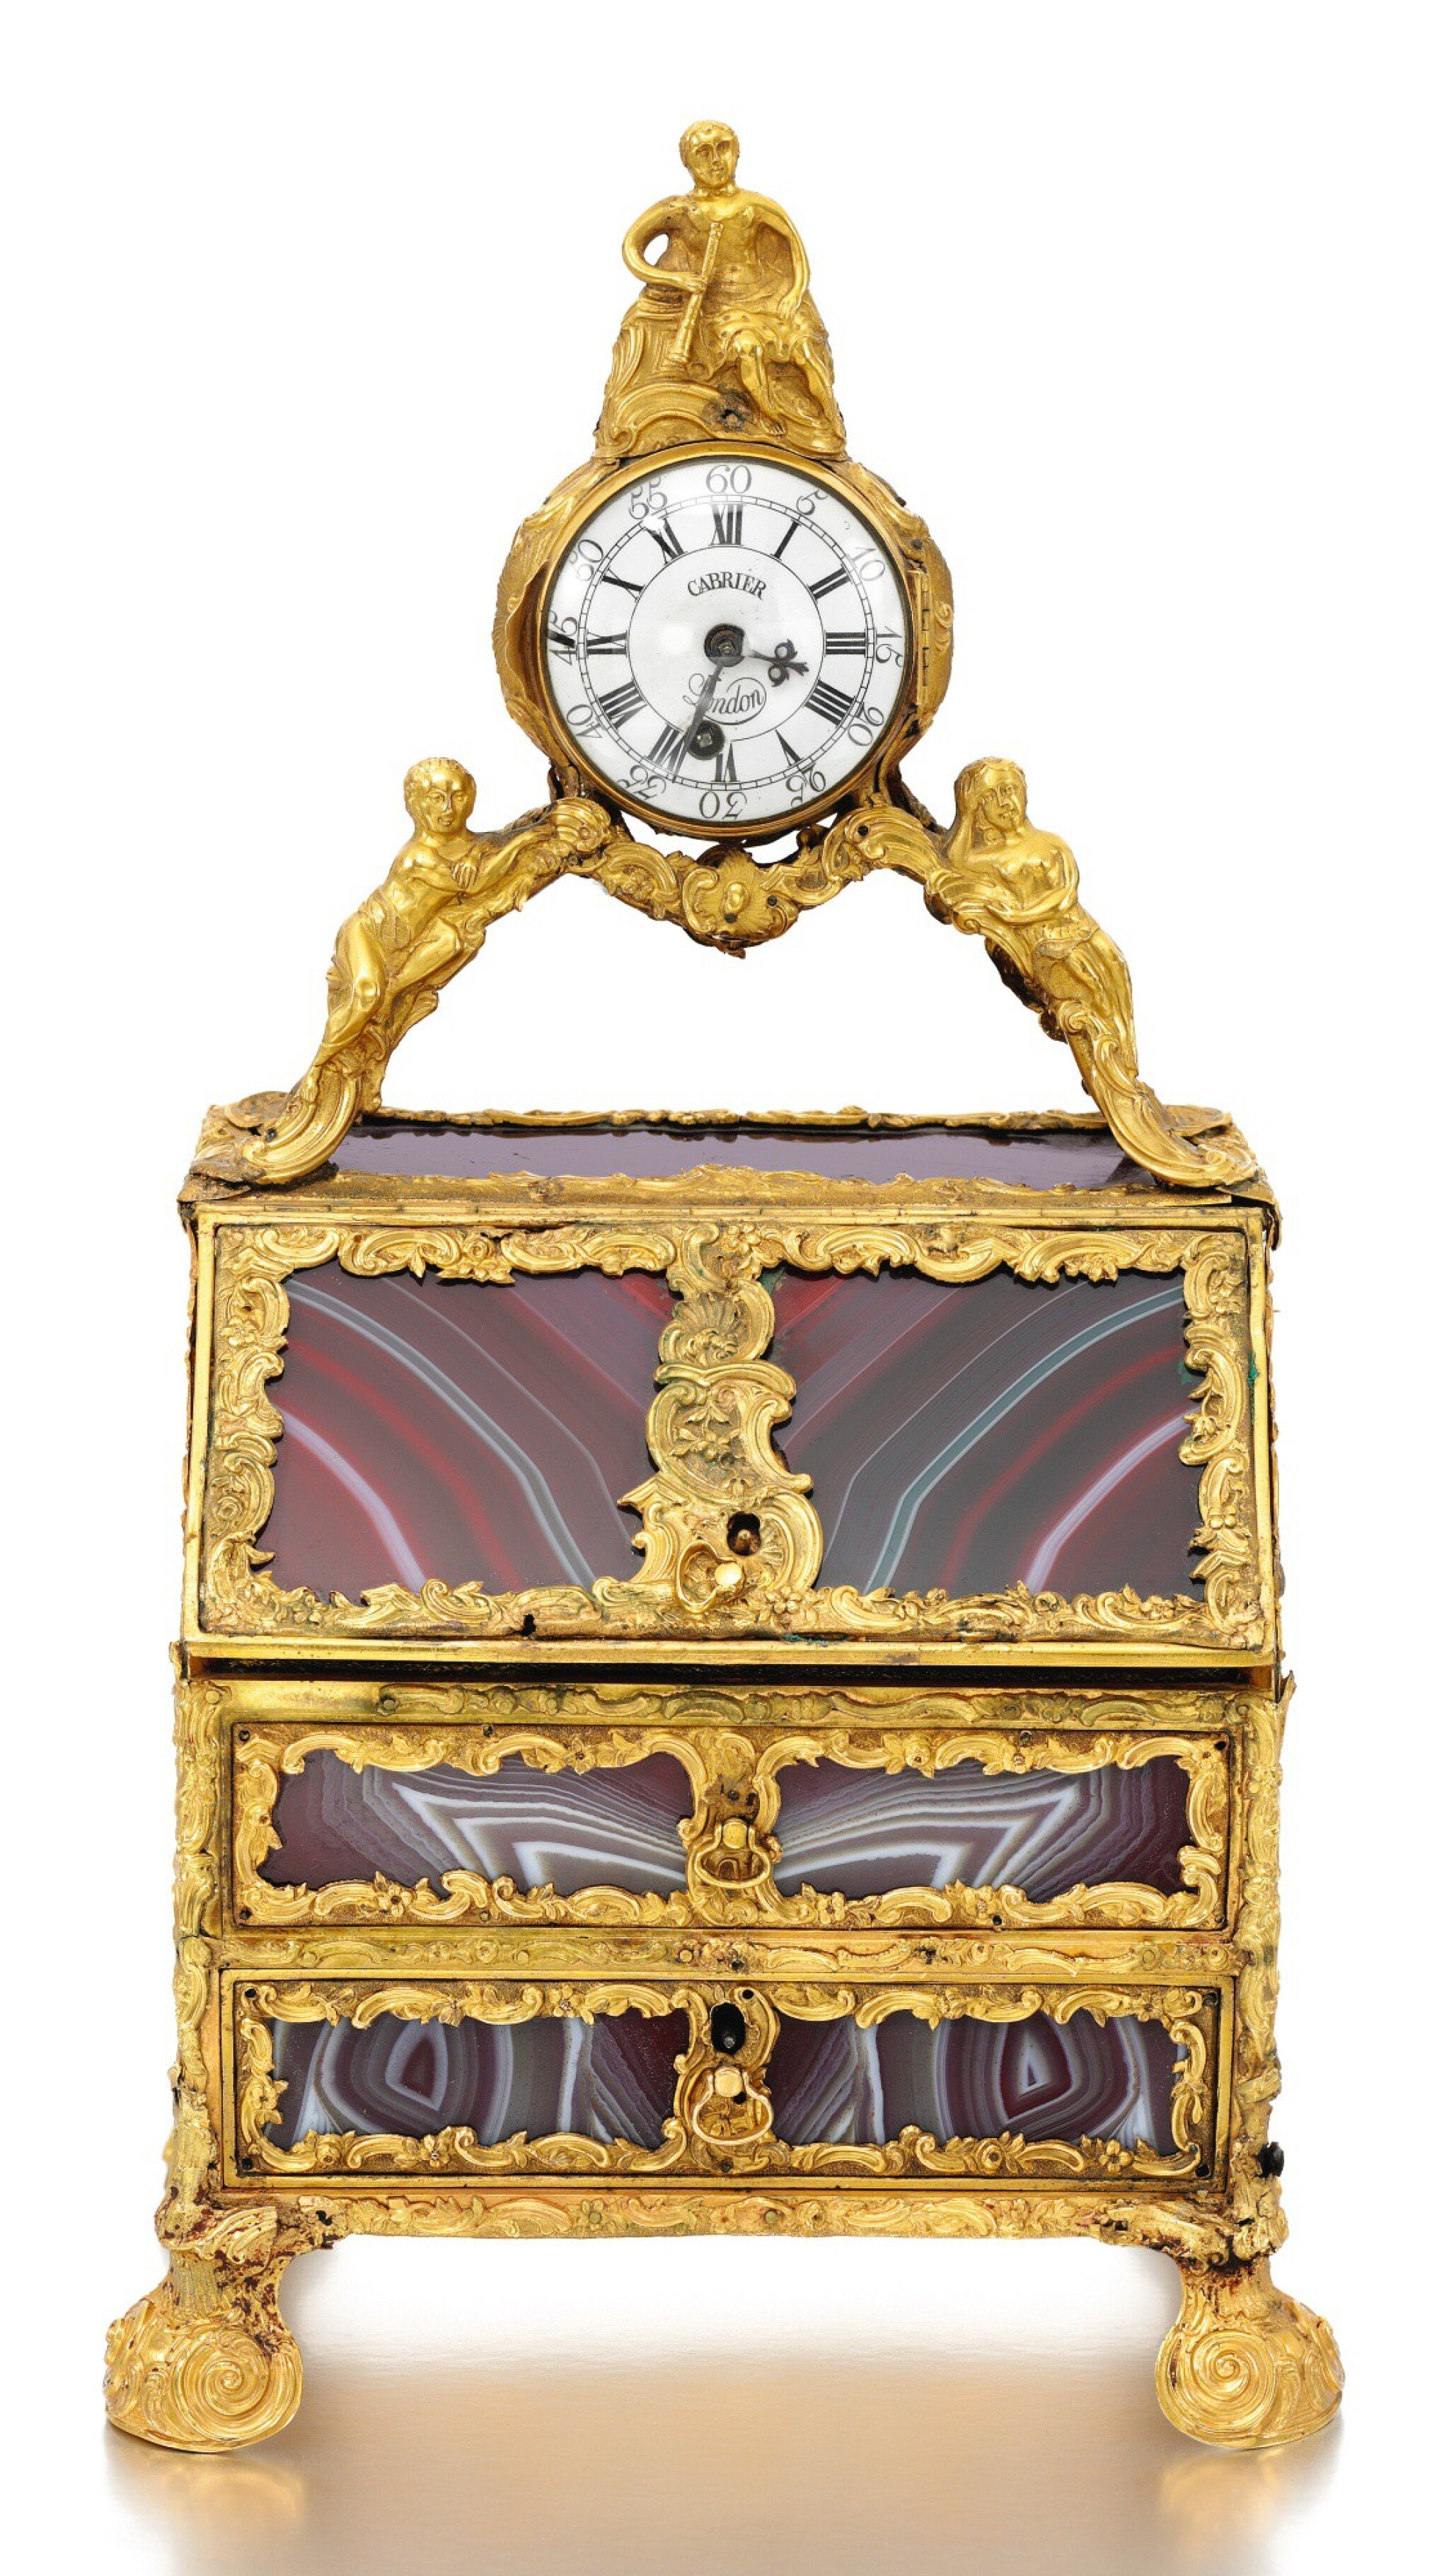 View full screen - View 1 of Lot 7. A GOLD-MOUNTED HARDSTONE NECESSAIRE IN THE MANNER OF JAMES COX, ENGLISH, CIRCA 1770.